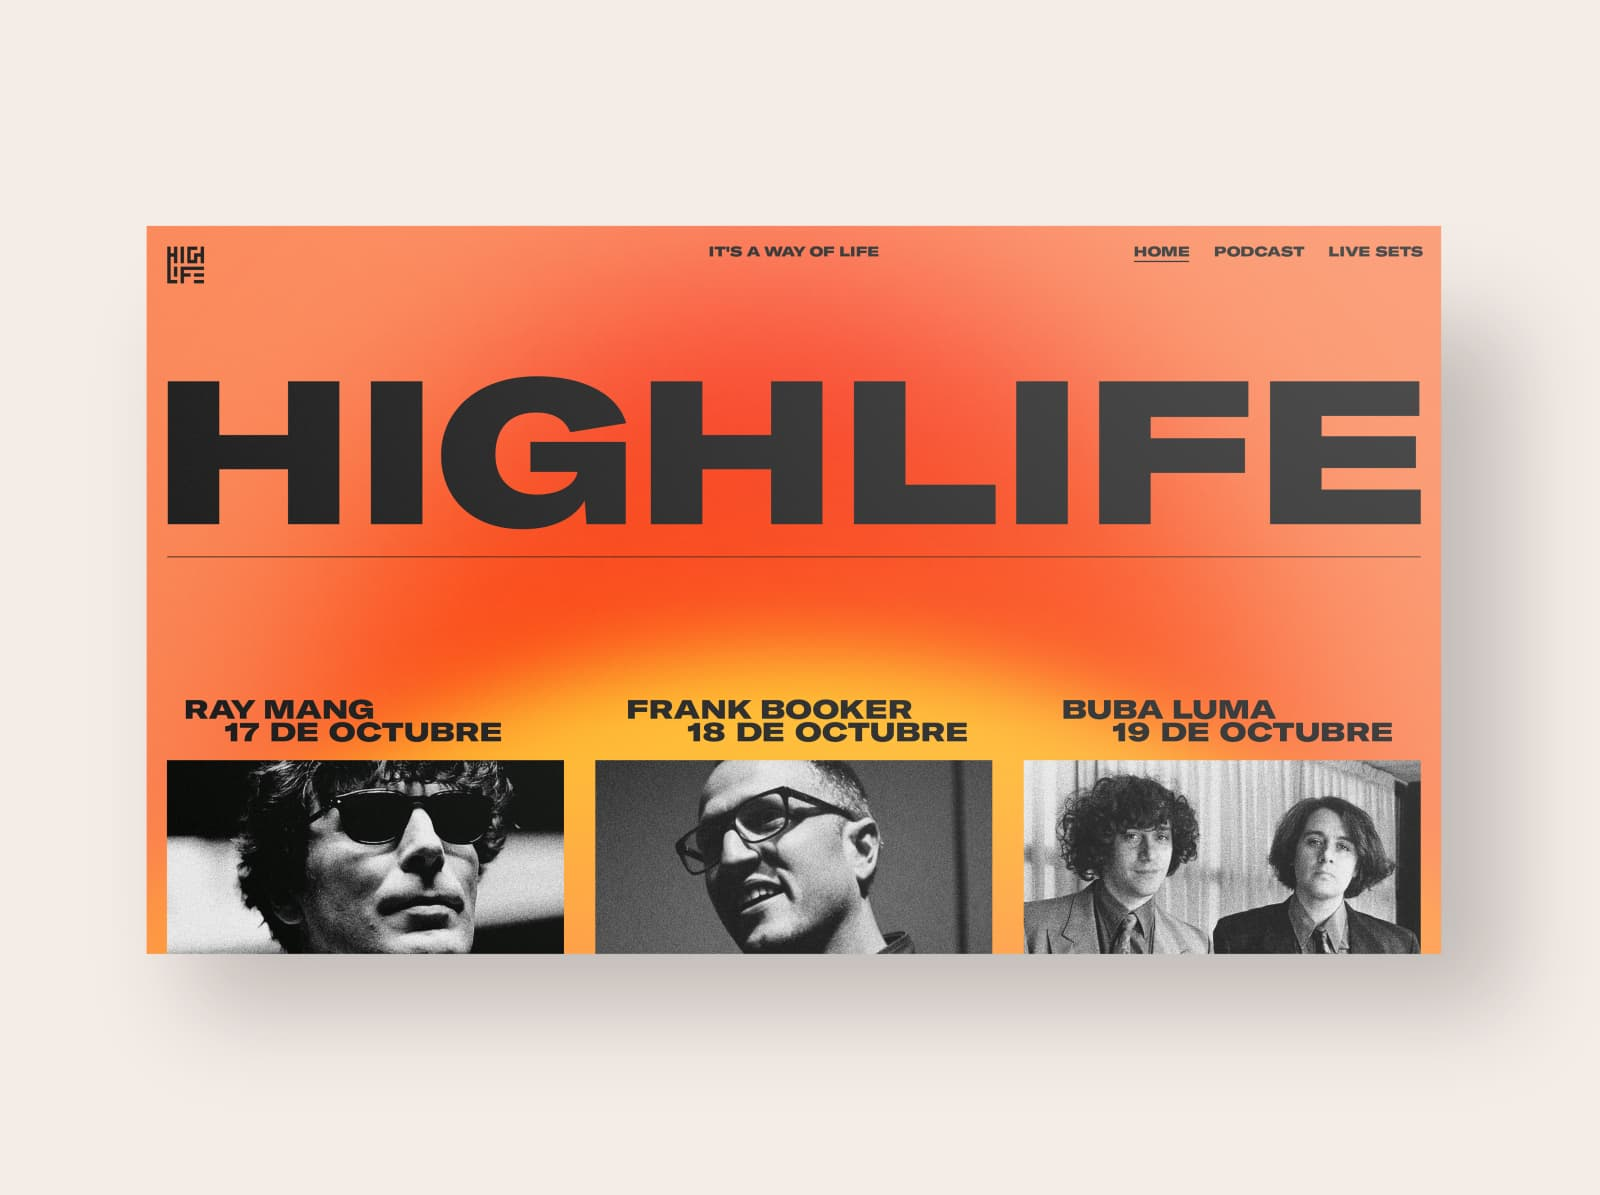 Highlife by Angello Torres